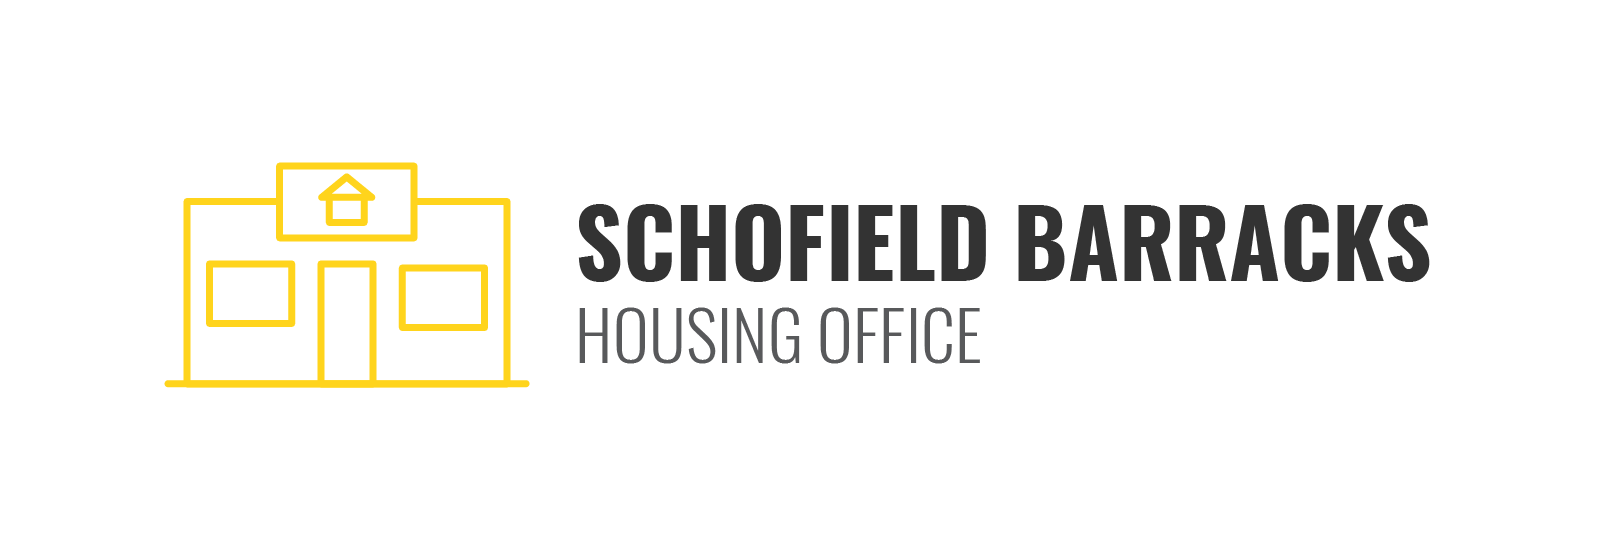 Schofield Barracks Housing Office